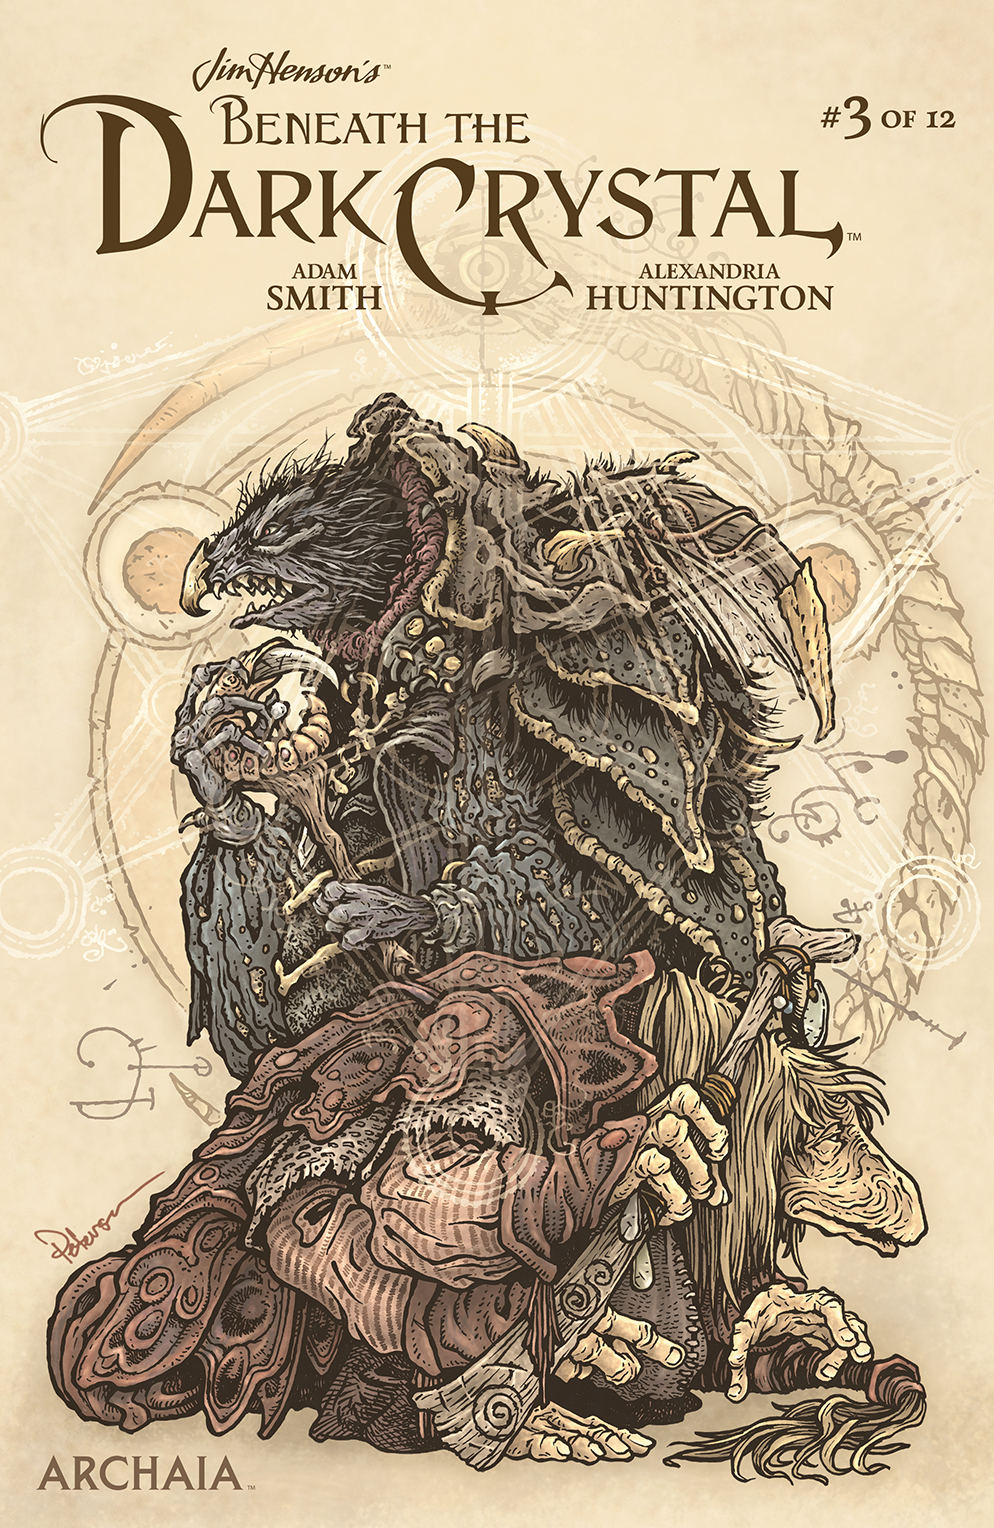 JIM HENSON BENEATH DARK CRYSTAL #3 (OF 12) SUBSCRIP PETERSEN